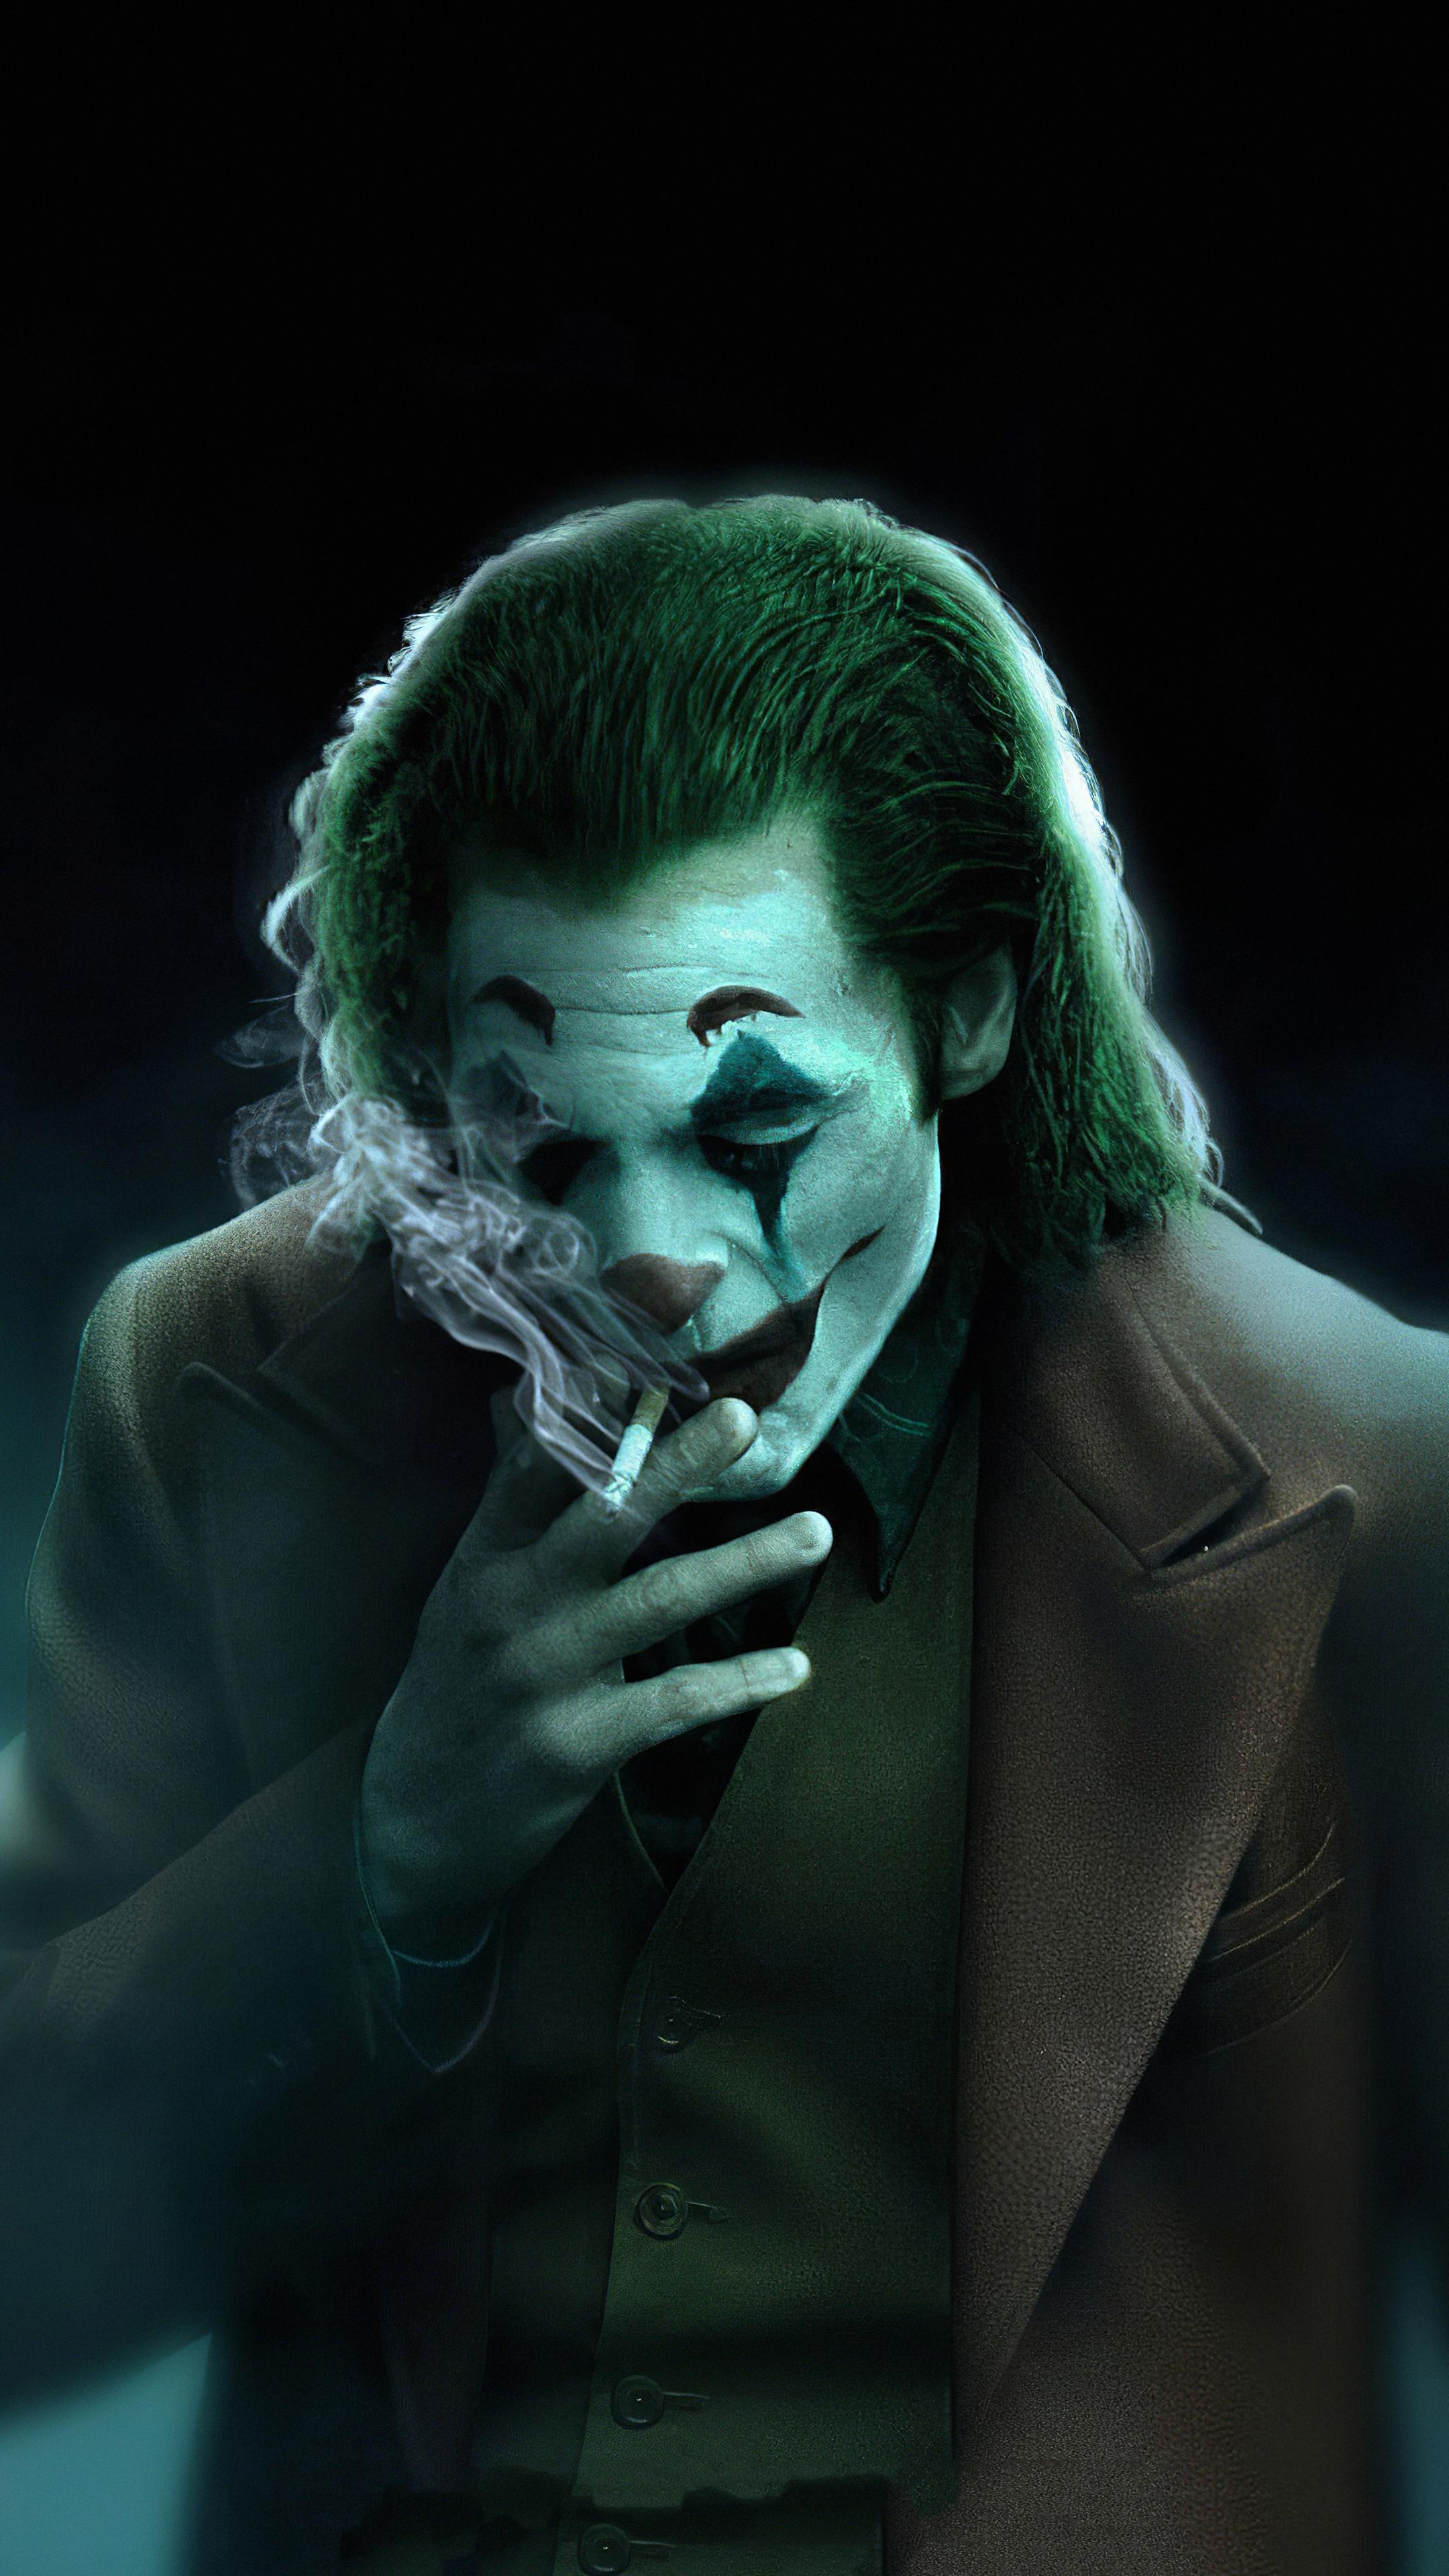 joker-smoker-art-4k-ra.jpg